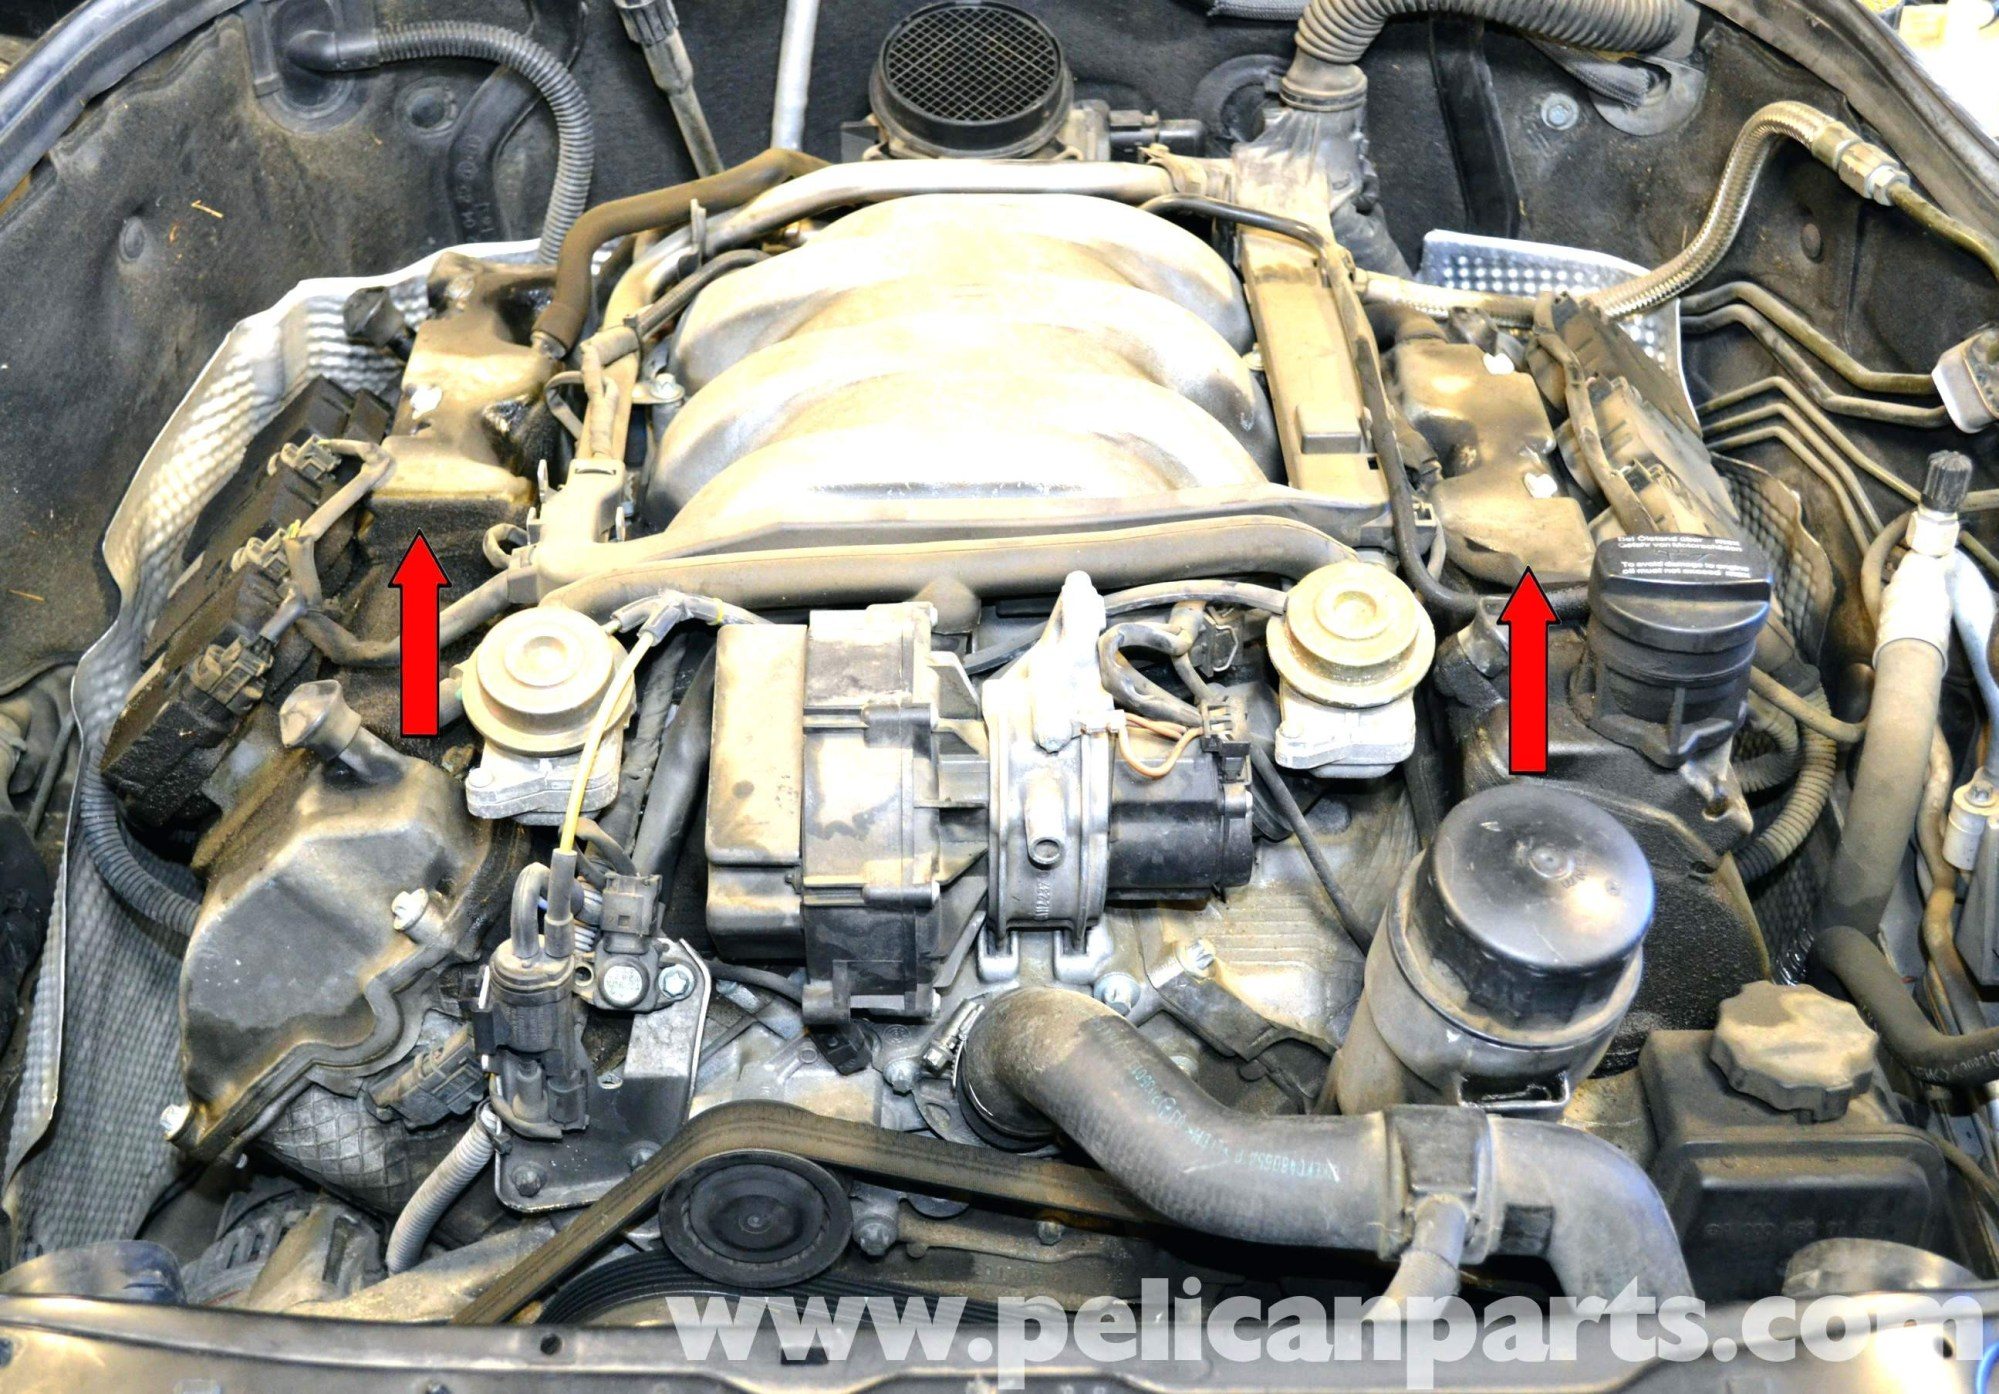 hight resolution of mercedes ml320 engine diagram wiring diagrams wniml320 engine diagram wiring diagram forward 2000 mercedes ml320 engine